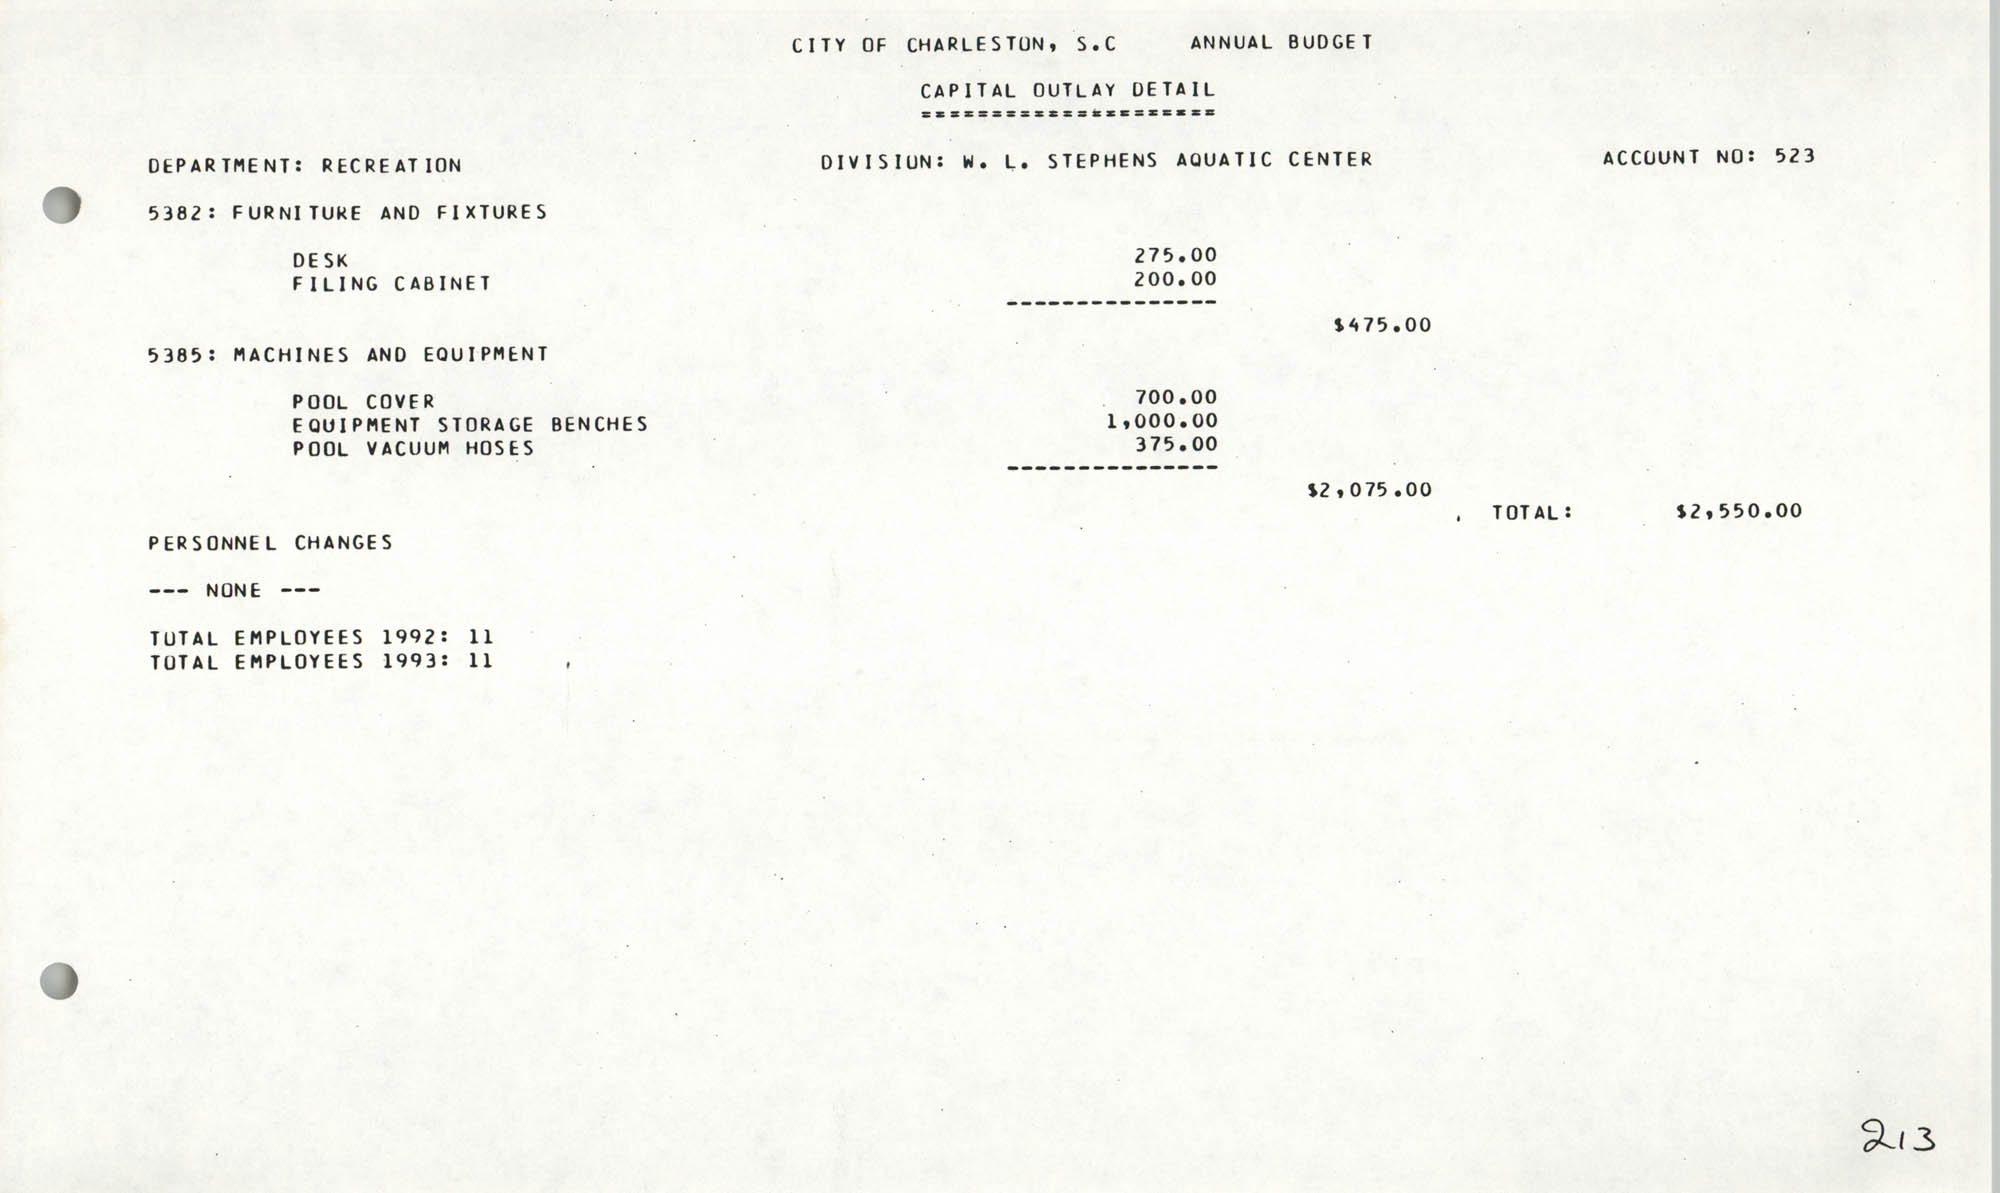 The City Council of Charleston, South Carolina, 1993 Budget, Page 213